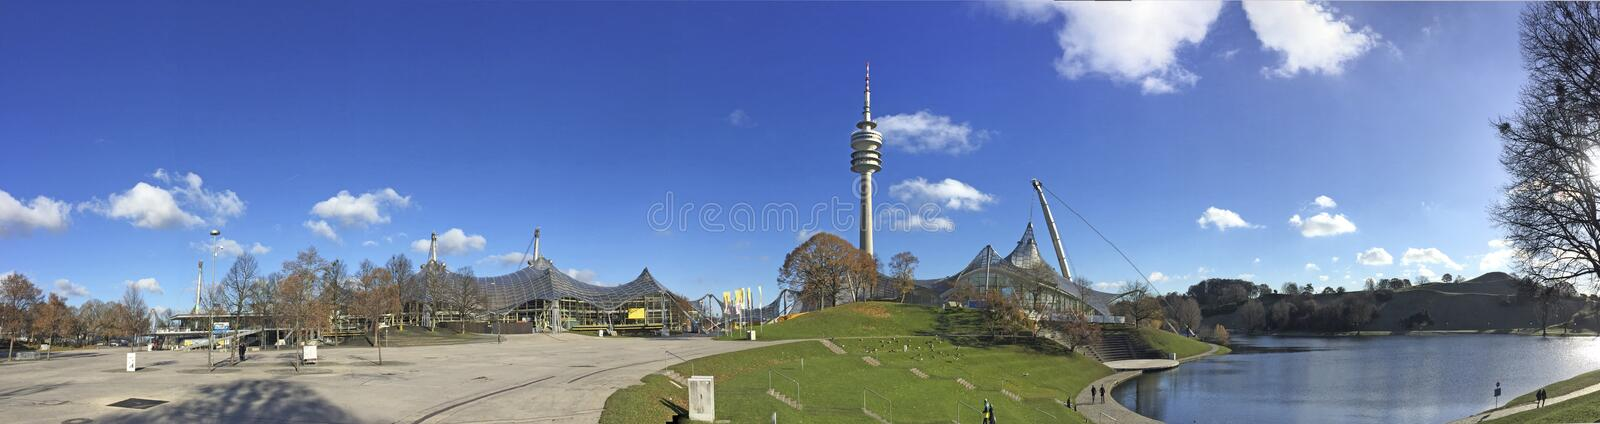 The Olympiapark in Munich, Germany, is an Olympic Park which was constructed for the 1972 Summer Olympics royalty free stock photo